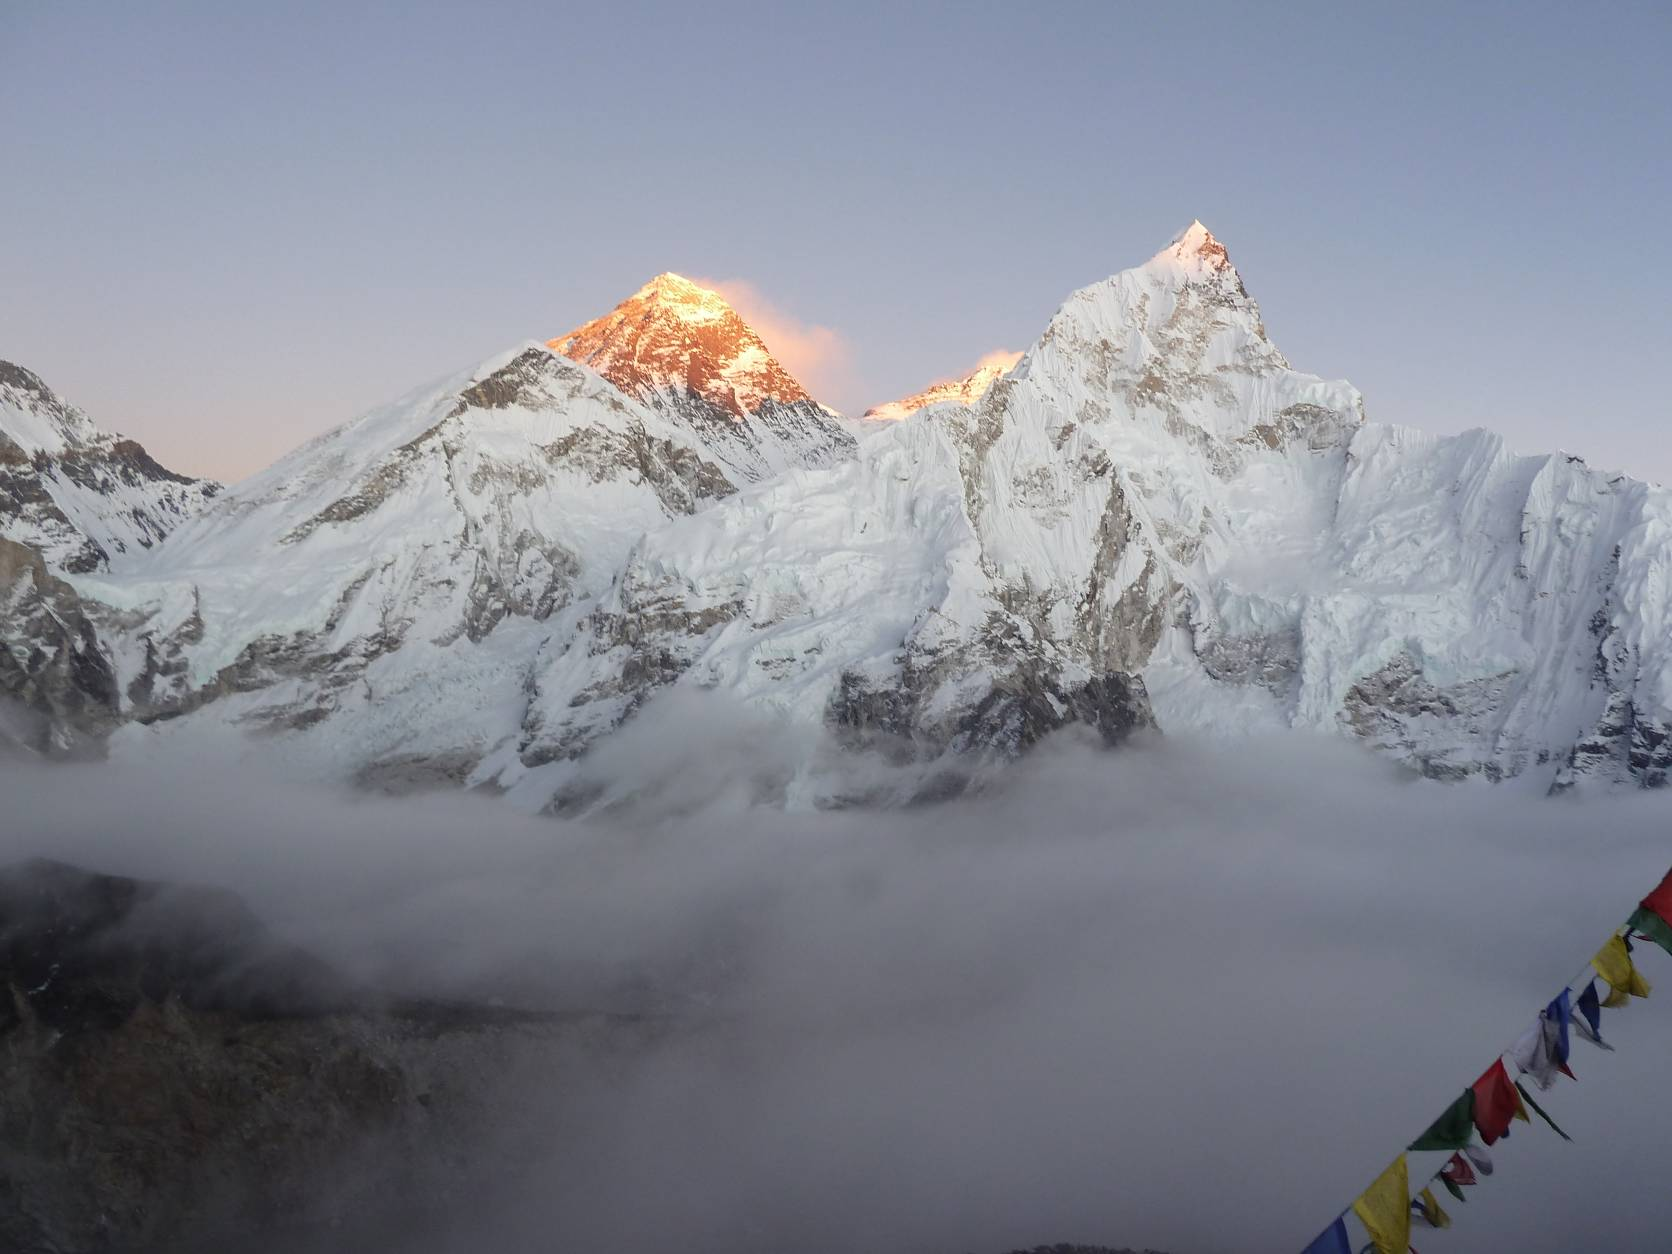 Trekking Mt. Everest Basecamp 2019